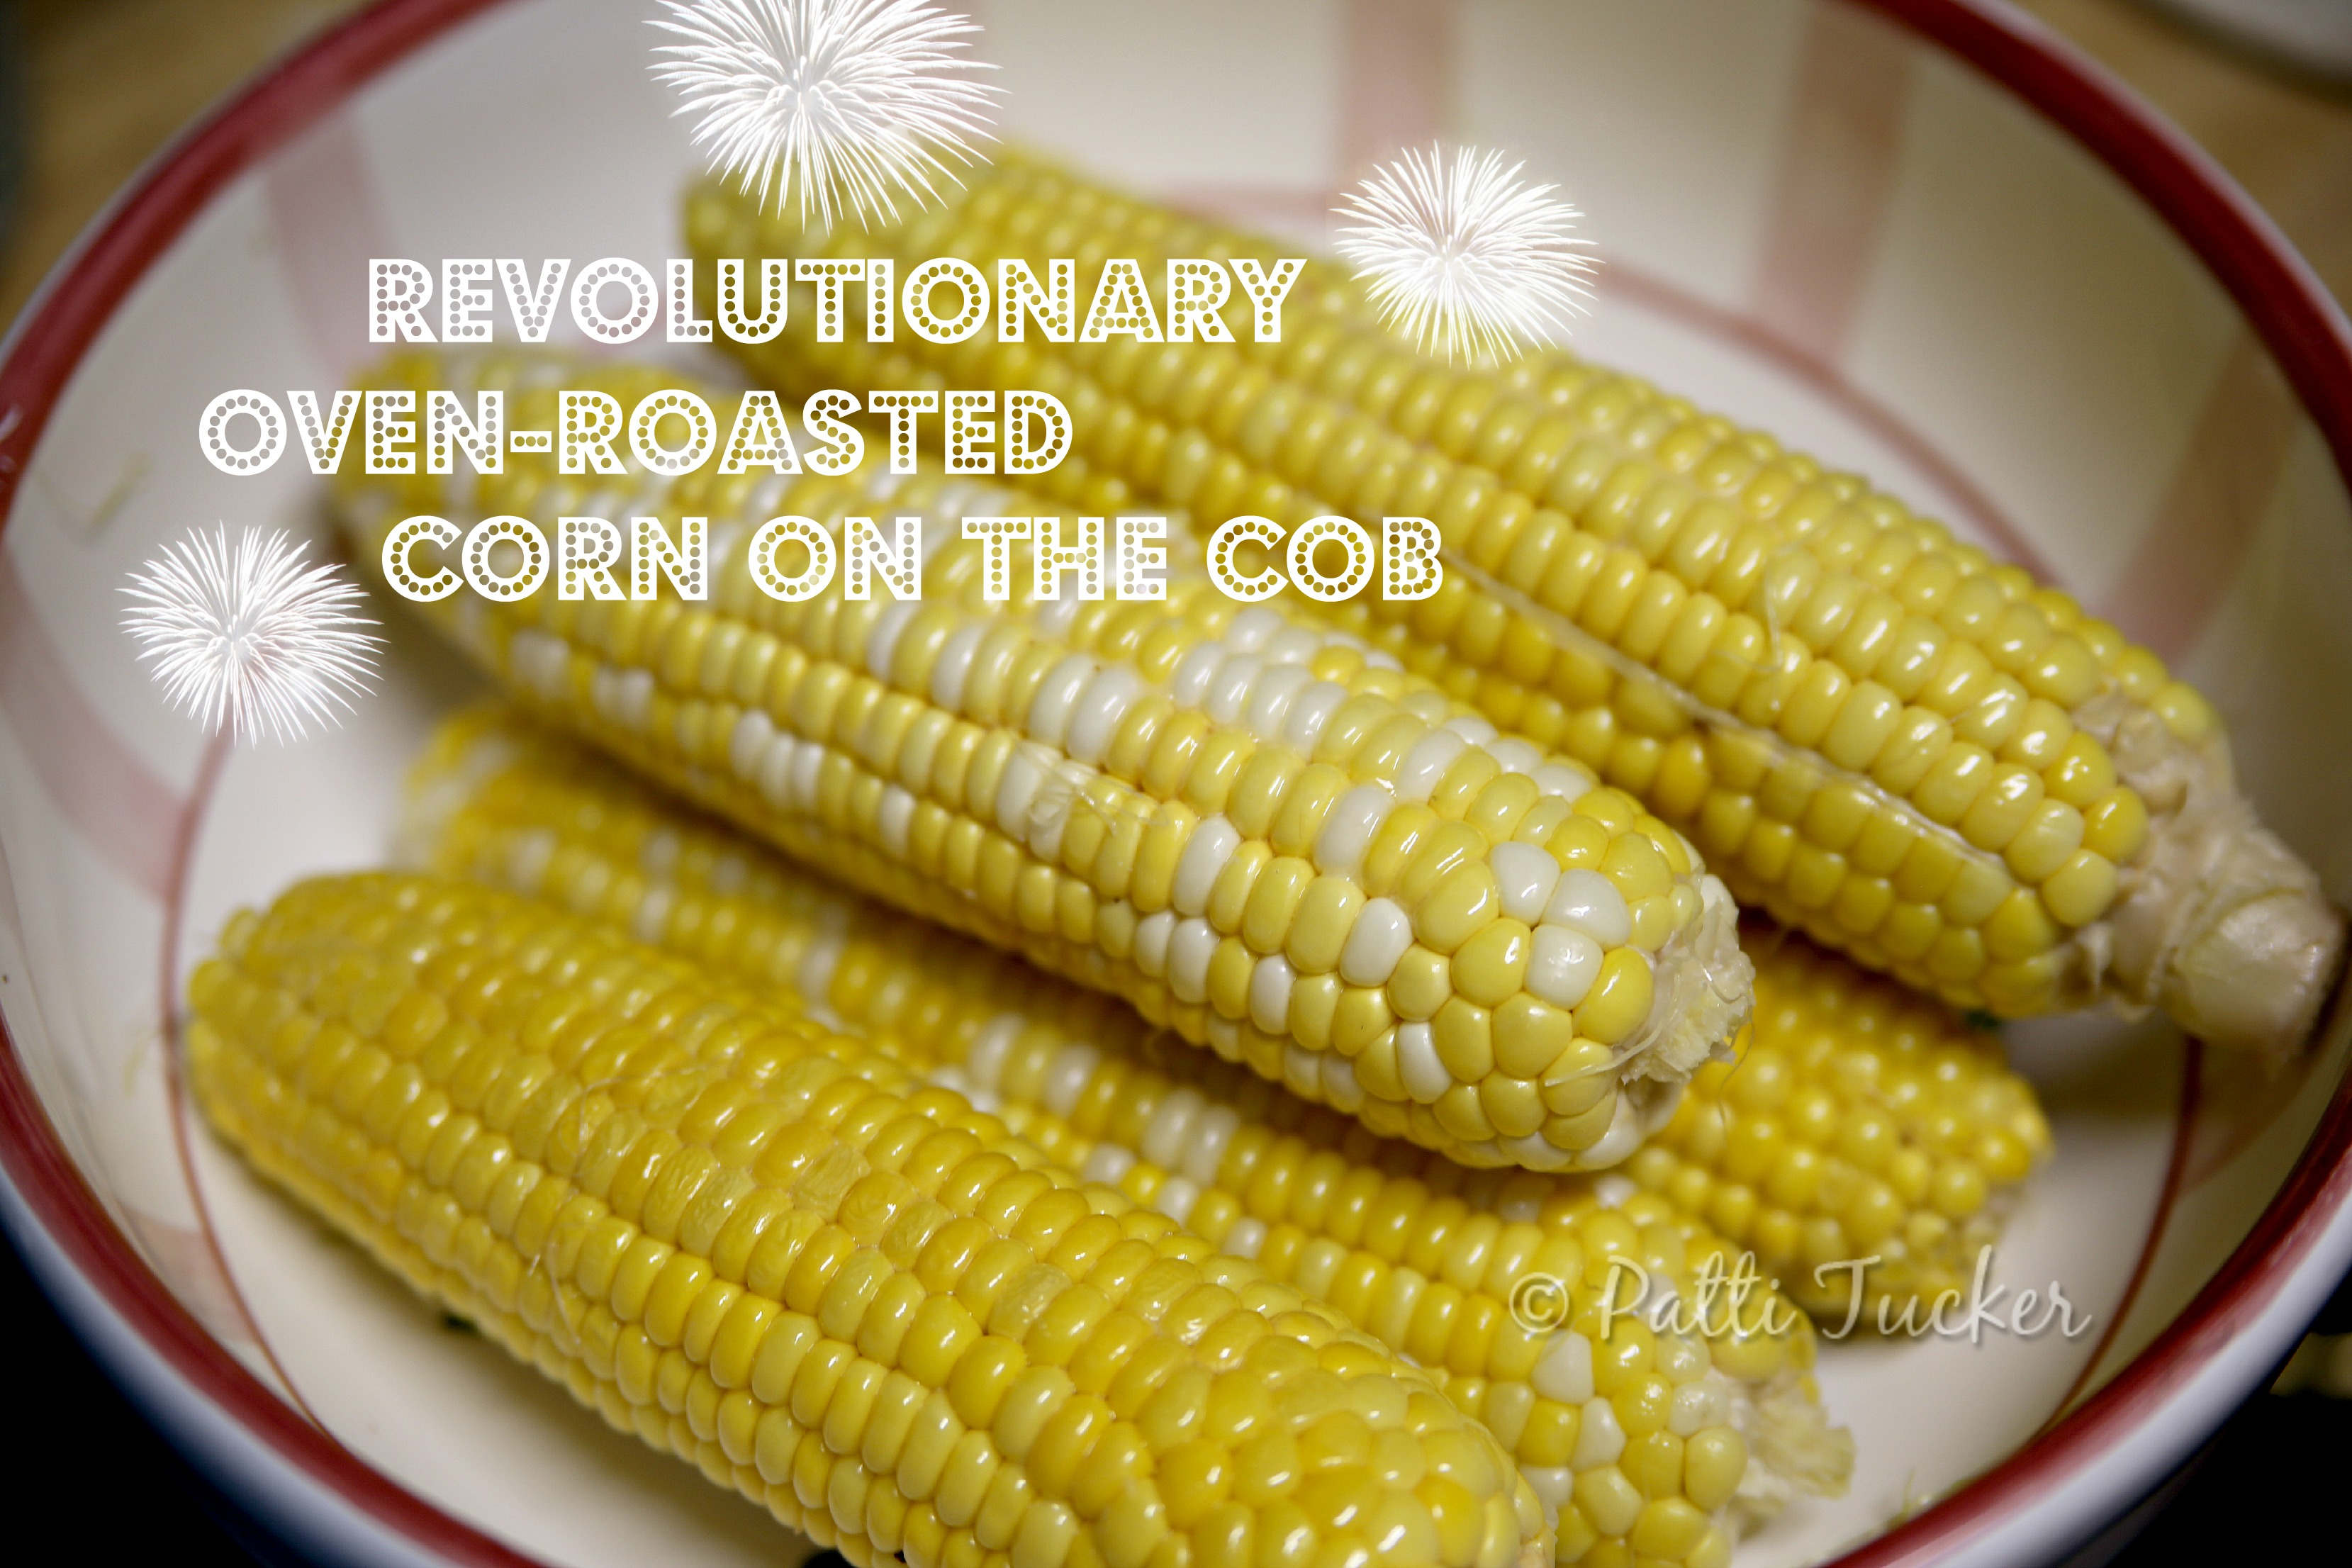 text graphic: Revolutionary Oven-Roasted Corn on the Cob